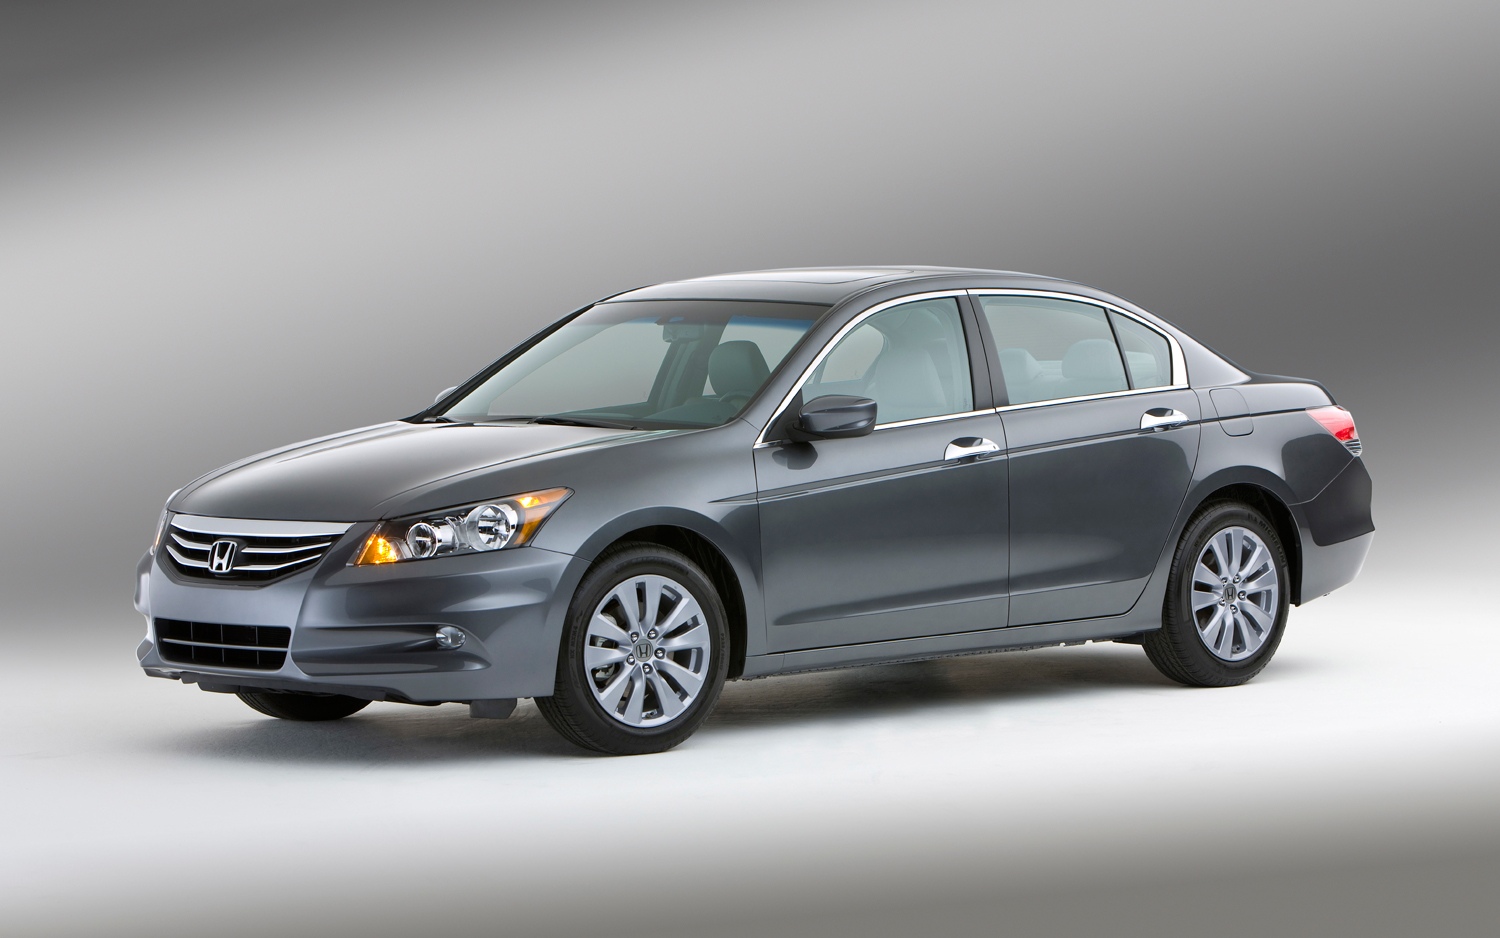 2012 Honda Accord #2